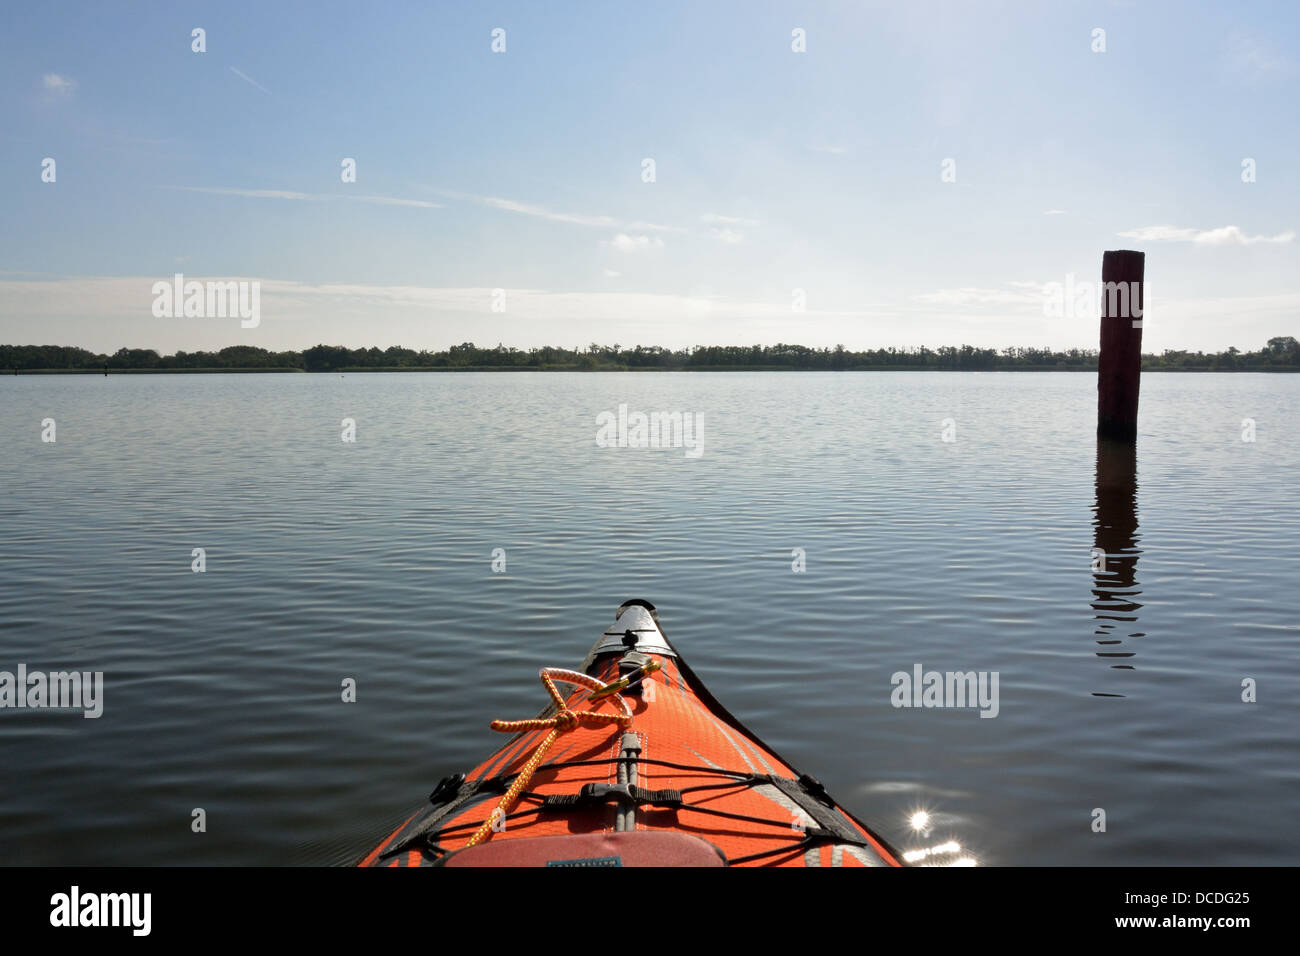 Channel marker post seen in the placid waters of Barton Broad, Norfolk, from an Advanced Elements AdvancedFrame Stock Photo